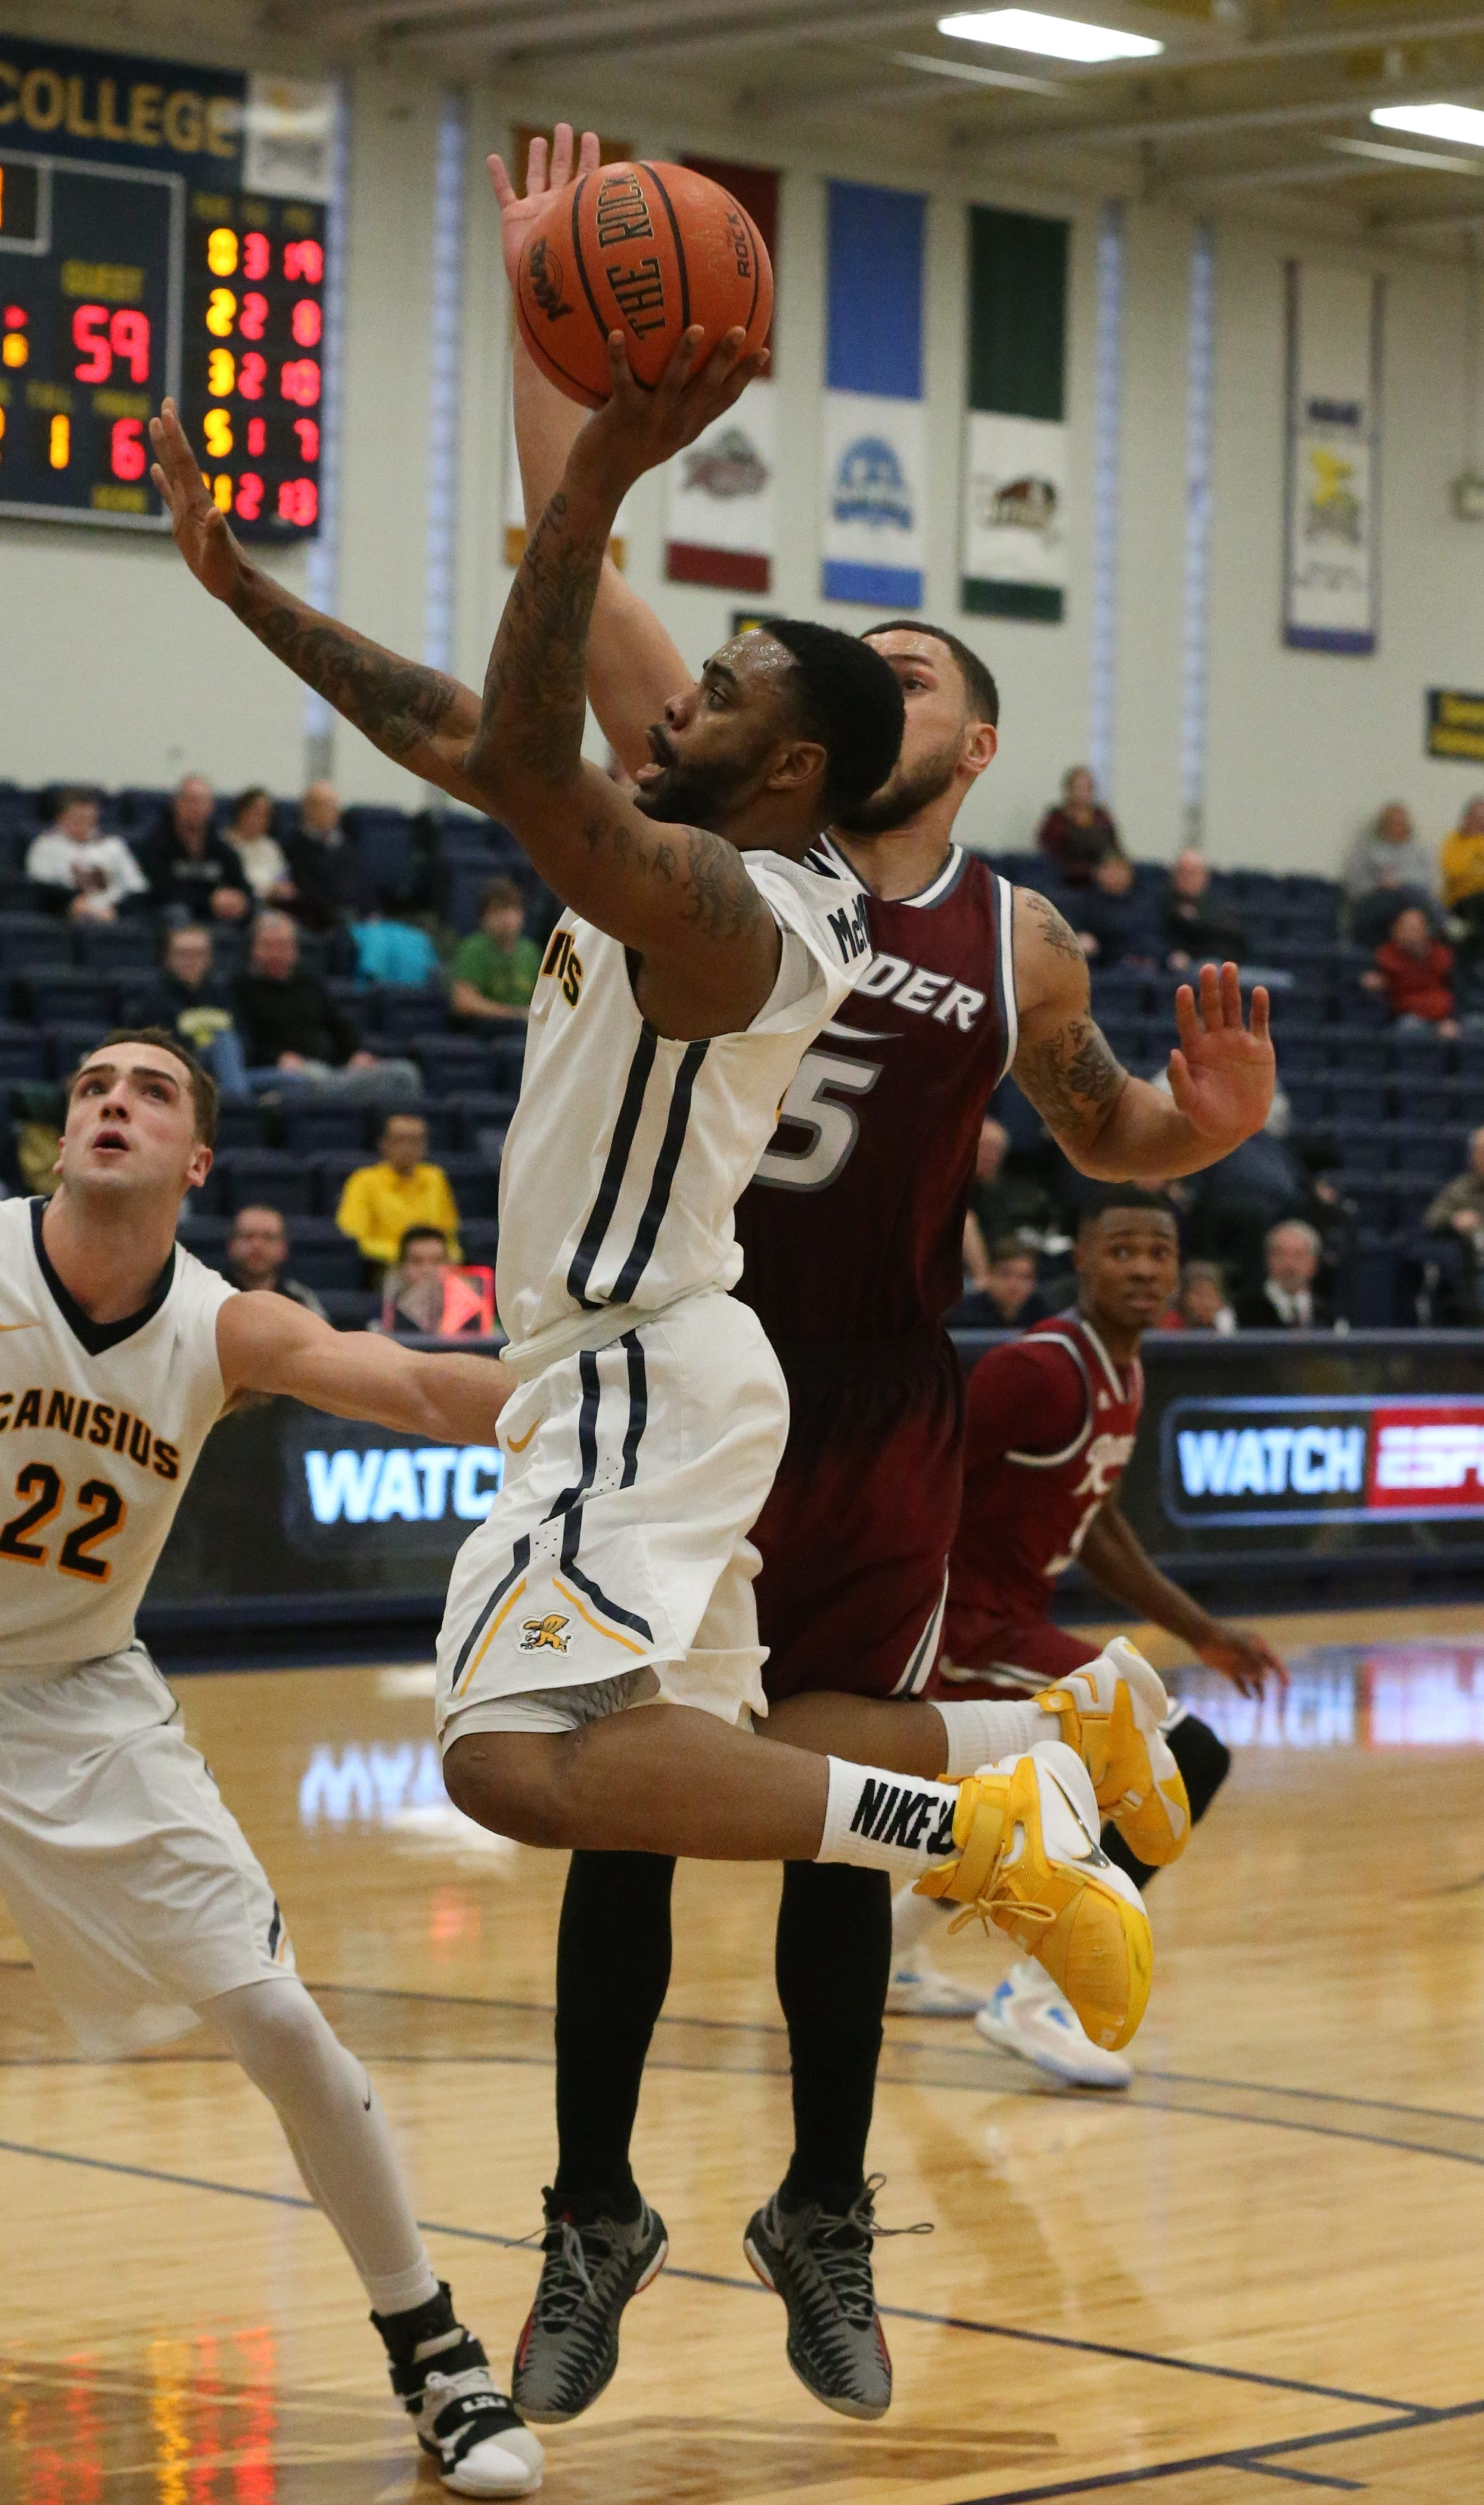 Canisius guard Malcolm McMillan, driving against Teddy Okereafor of Rider, scored 10 points for the Golden Griffins.